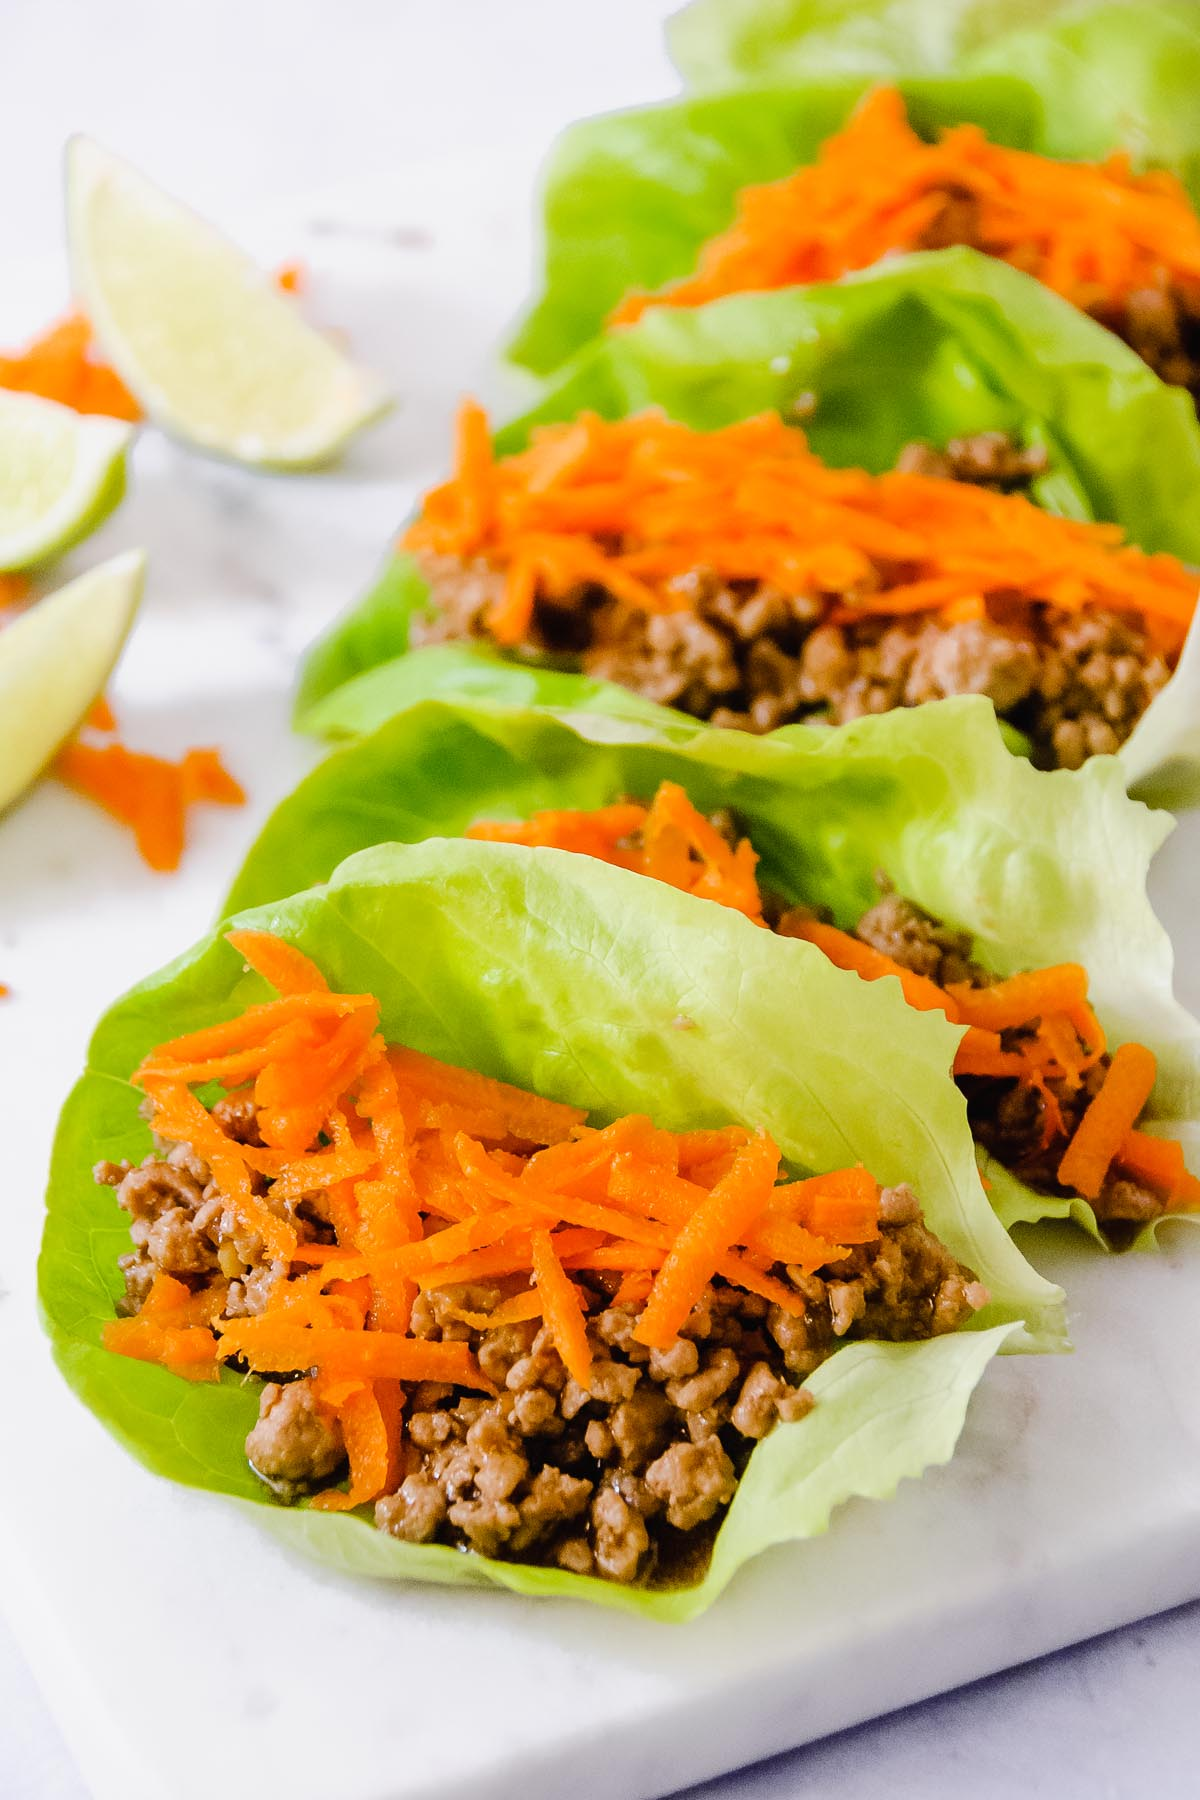 Spicy Garlic Pork Lettuce wraps are the answer to a quick - 30 minute and it's ready - weeknight meal for two… or more! Plus, even if you are just two, it's fun to build your meal together at the table! - thebeaderchef.com #30minutemeals #weeknight #quick #lettucewraps #cookingfortwo